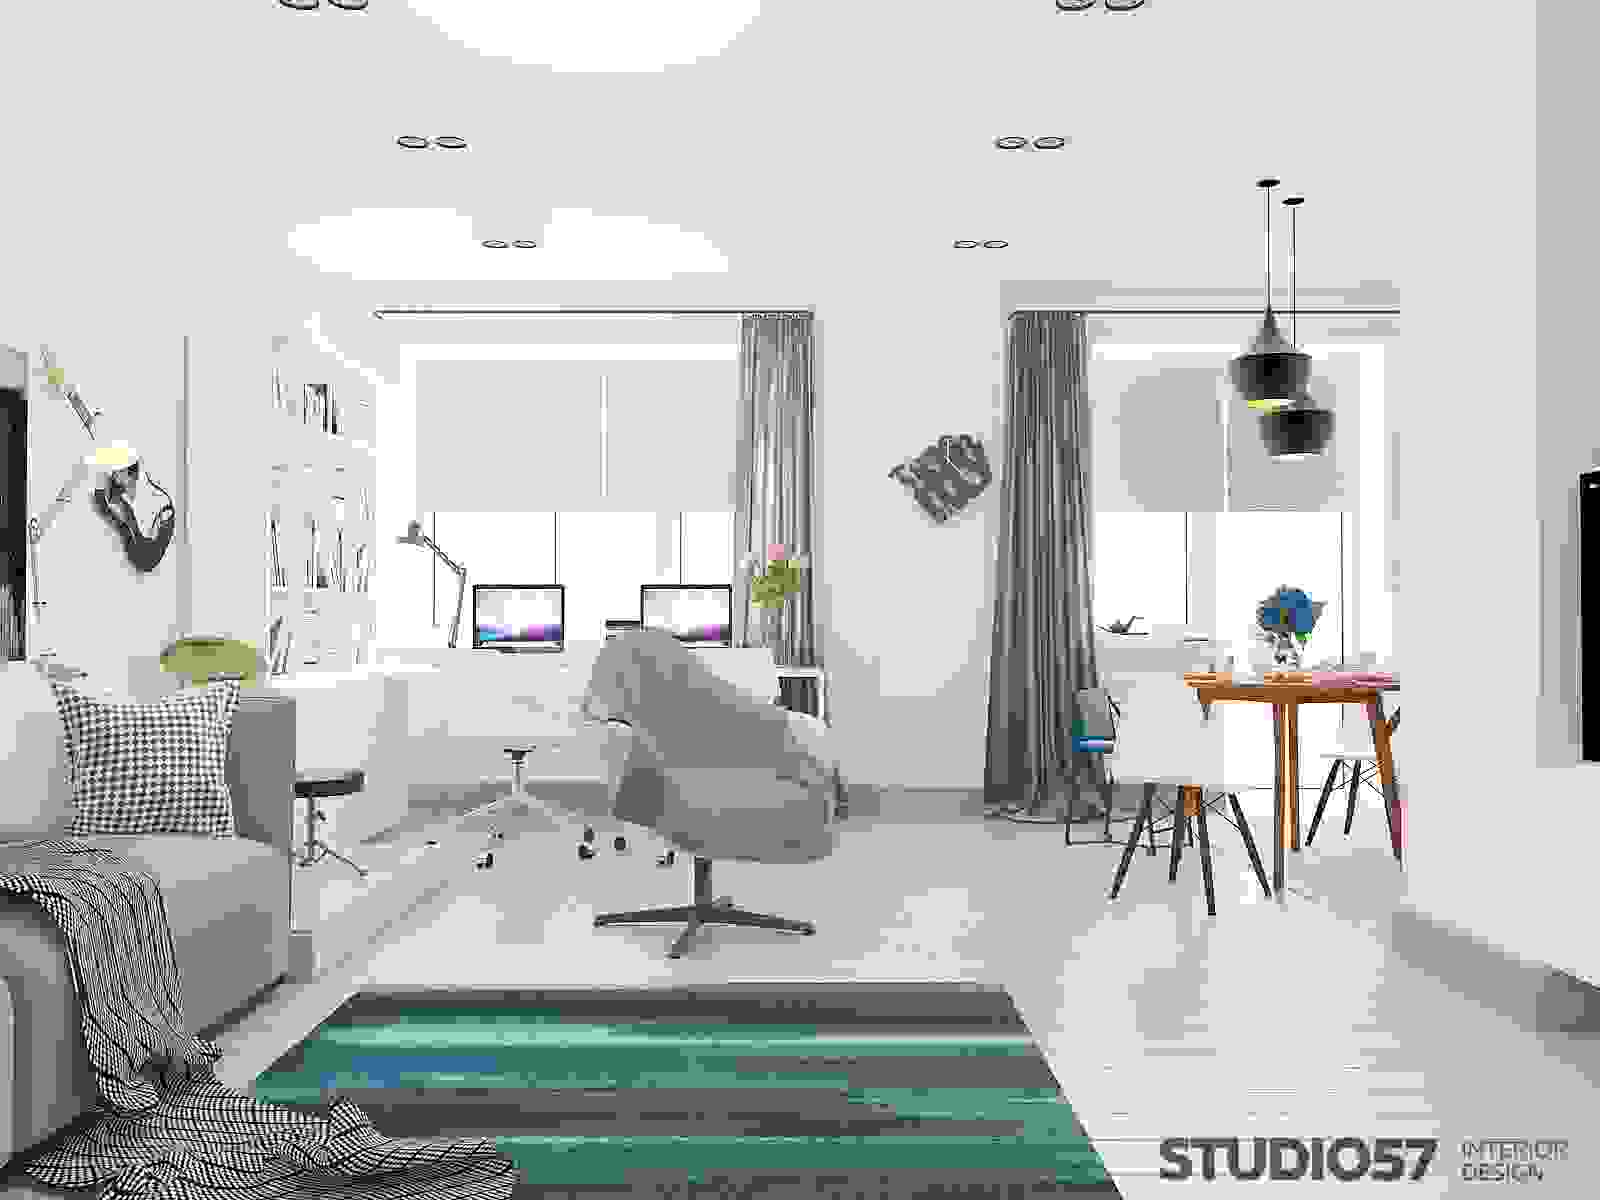 How to make a room in a studio photo